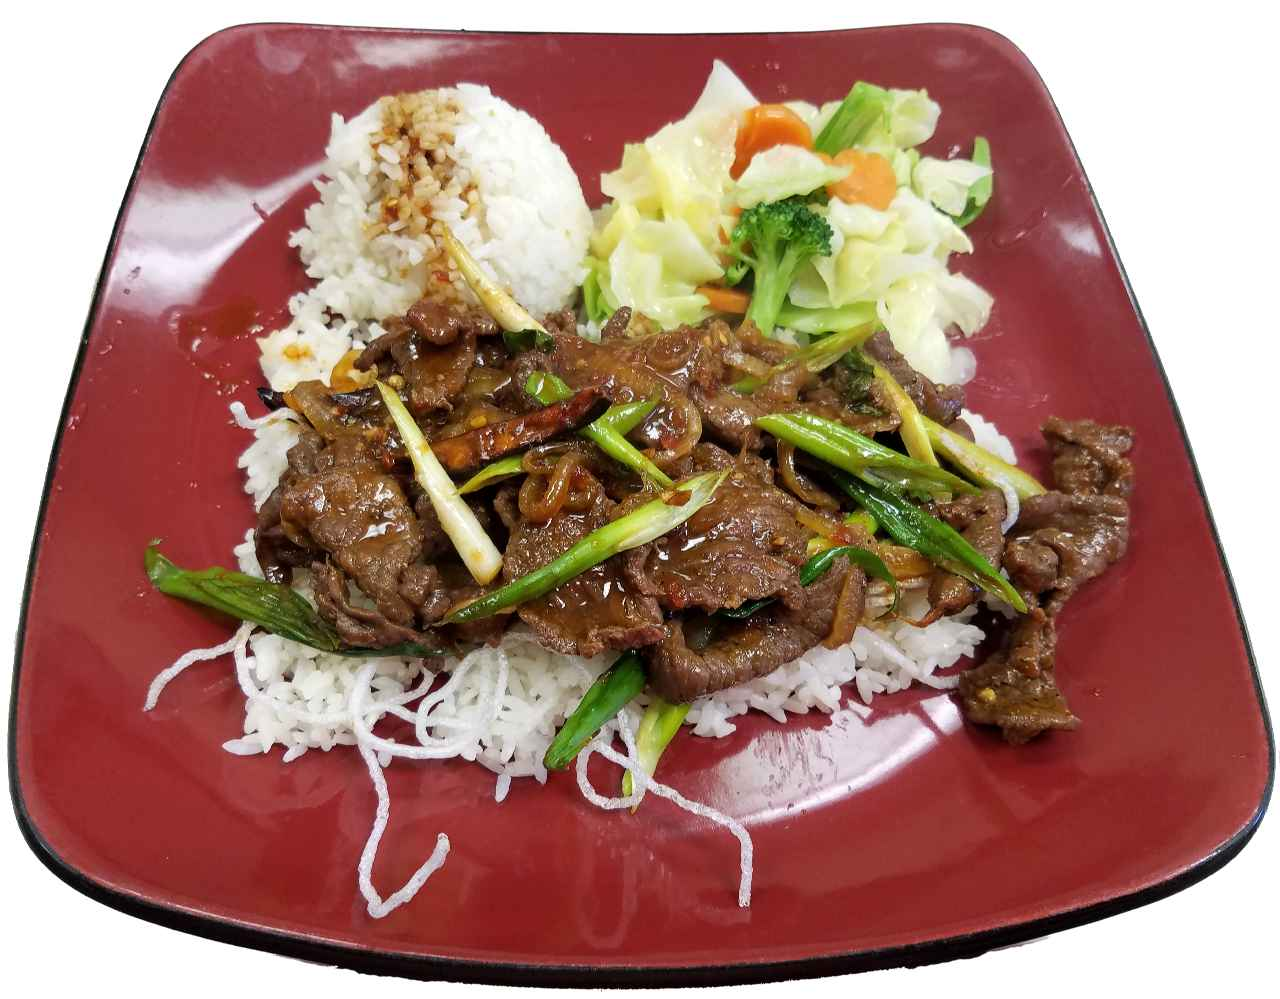 14. Spicy Mongolian Beef – HOT!